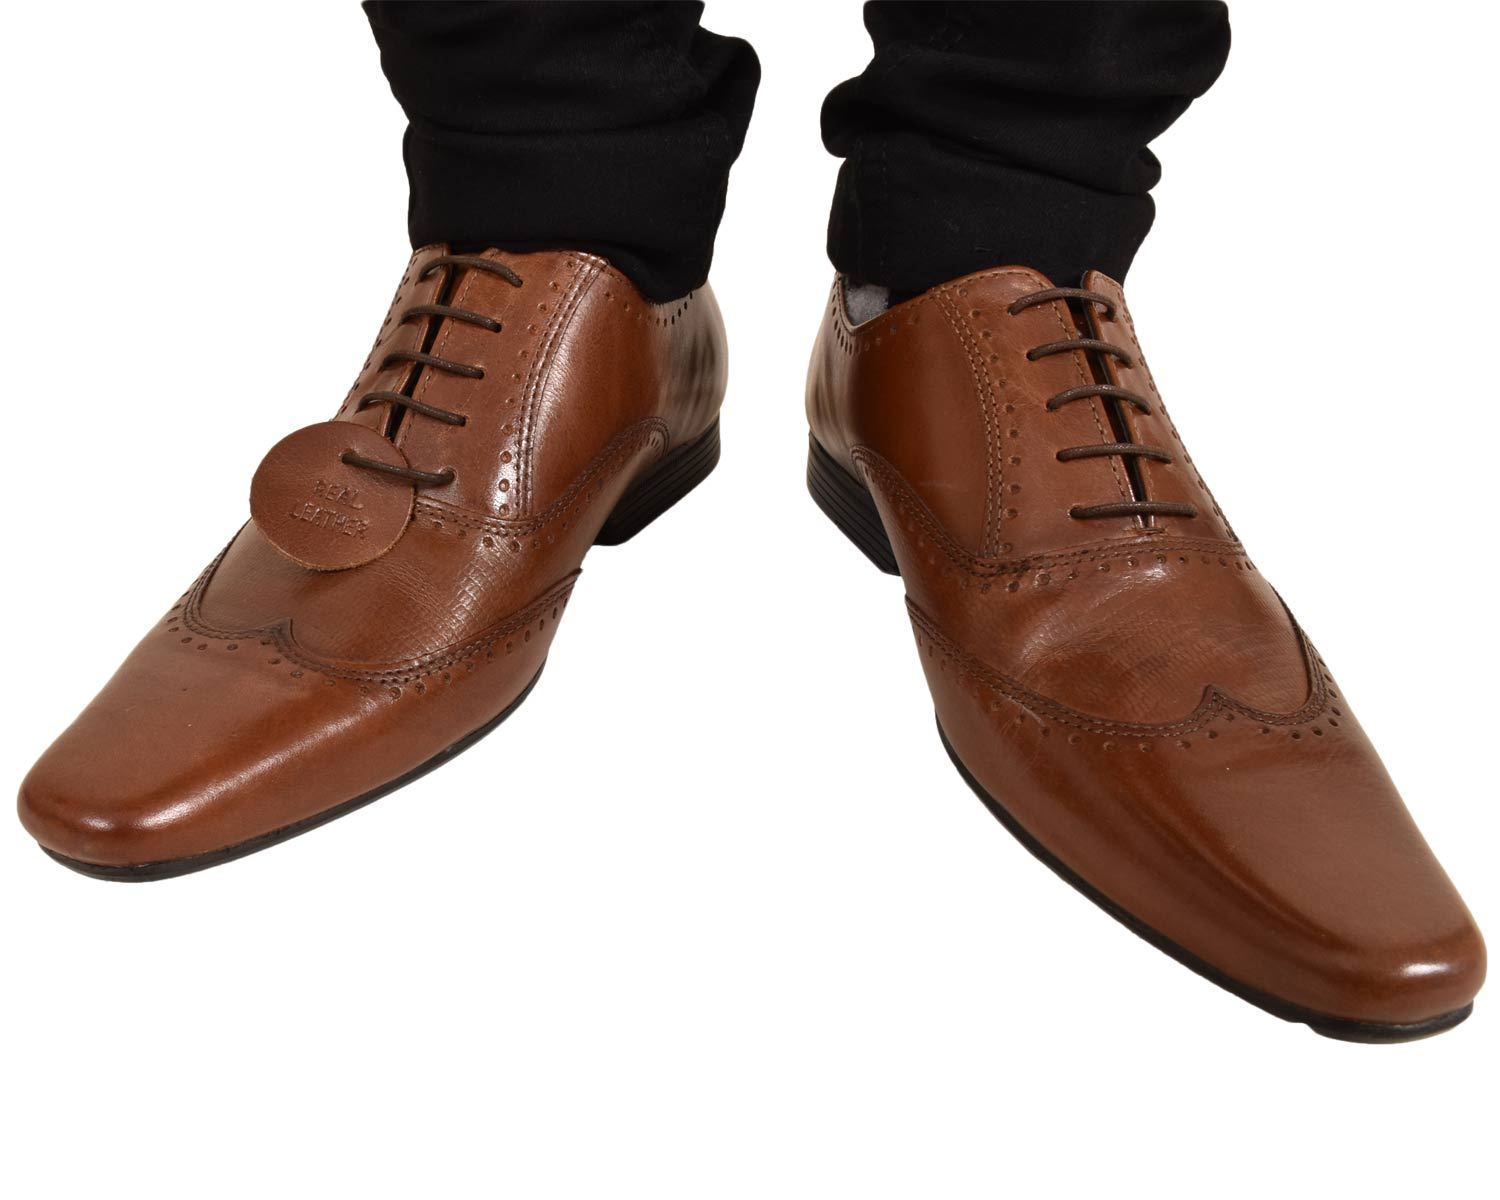 Mens-UK-Style-Leather-Lining-Formal-Office-Wedding-Smart-Work-Brogue-Shoes thumbnail 39